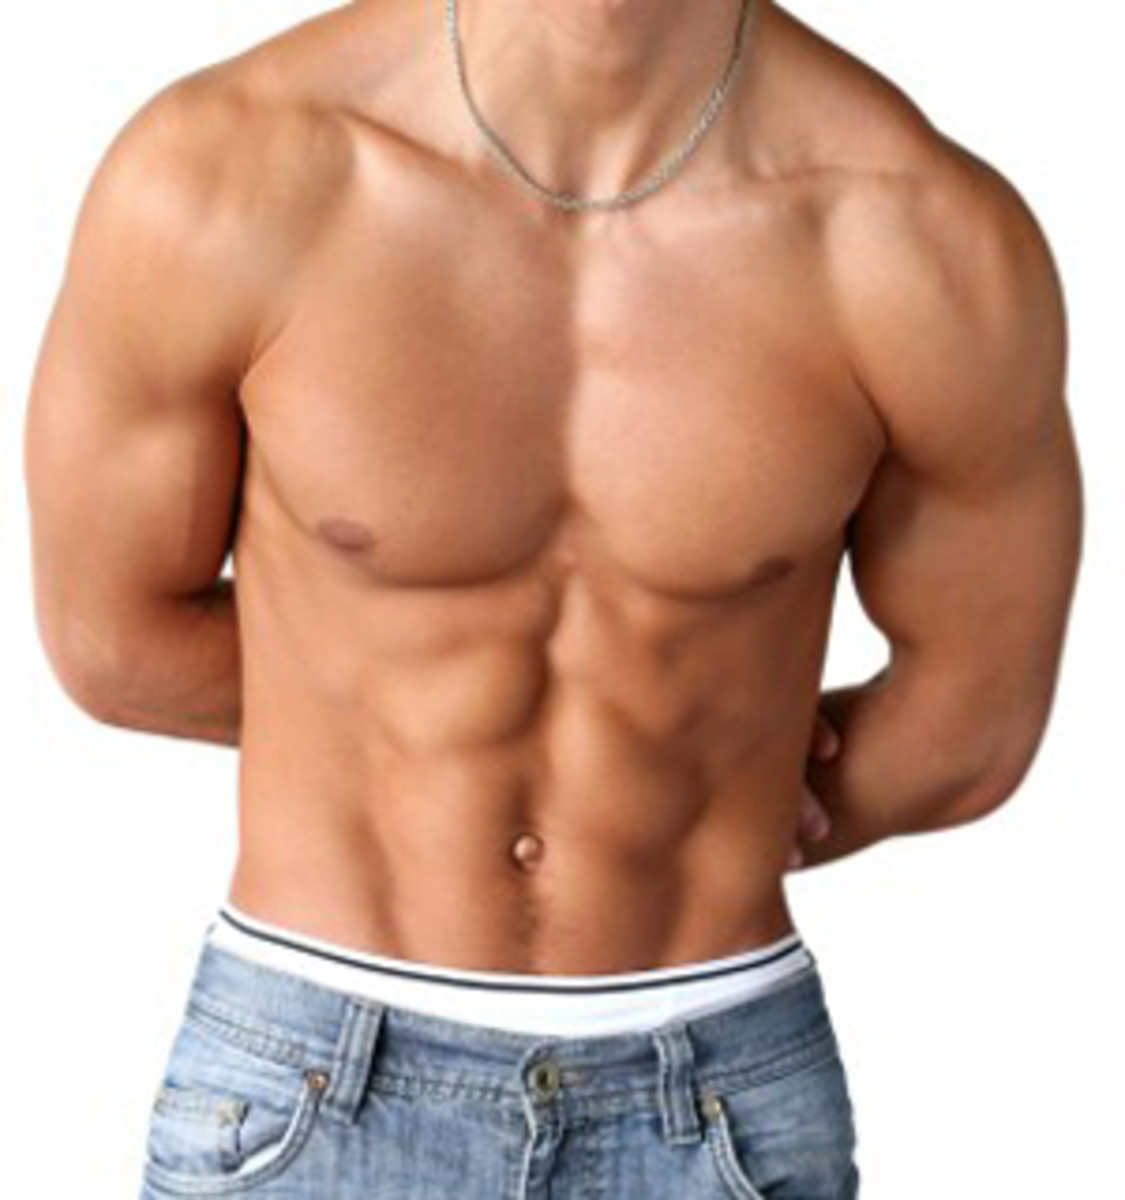 The Secrets of How to Build Muscle Without Weights - Useful Exercises